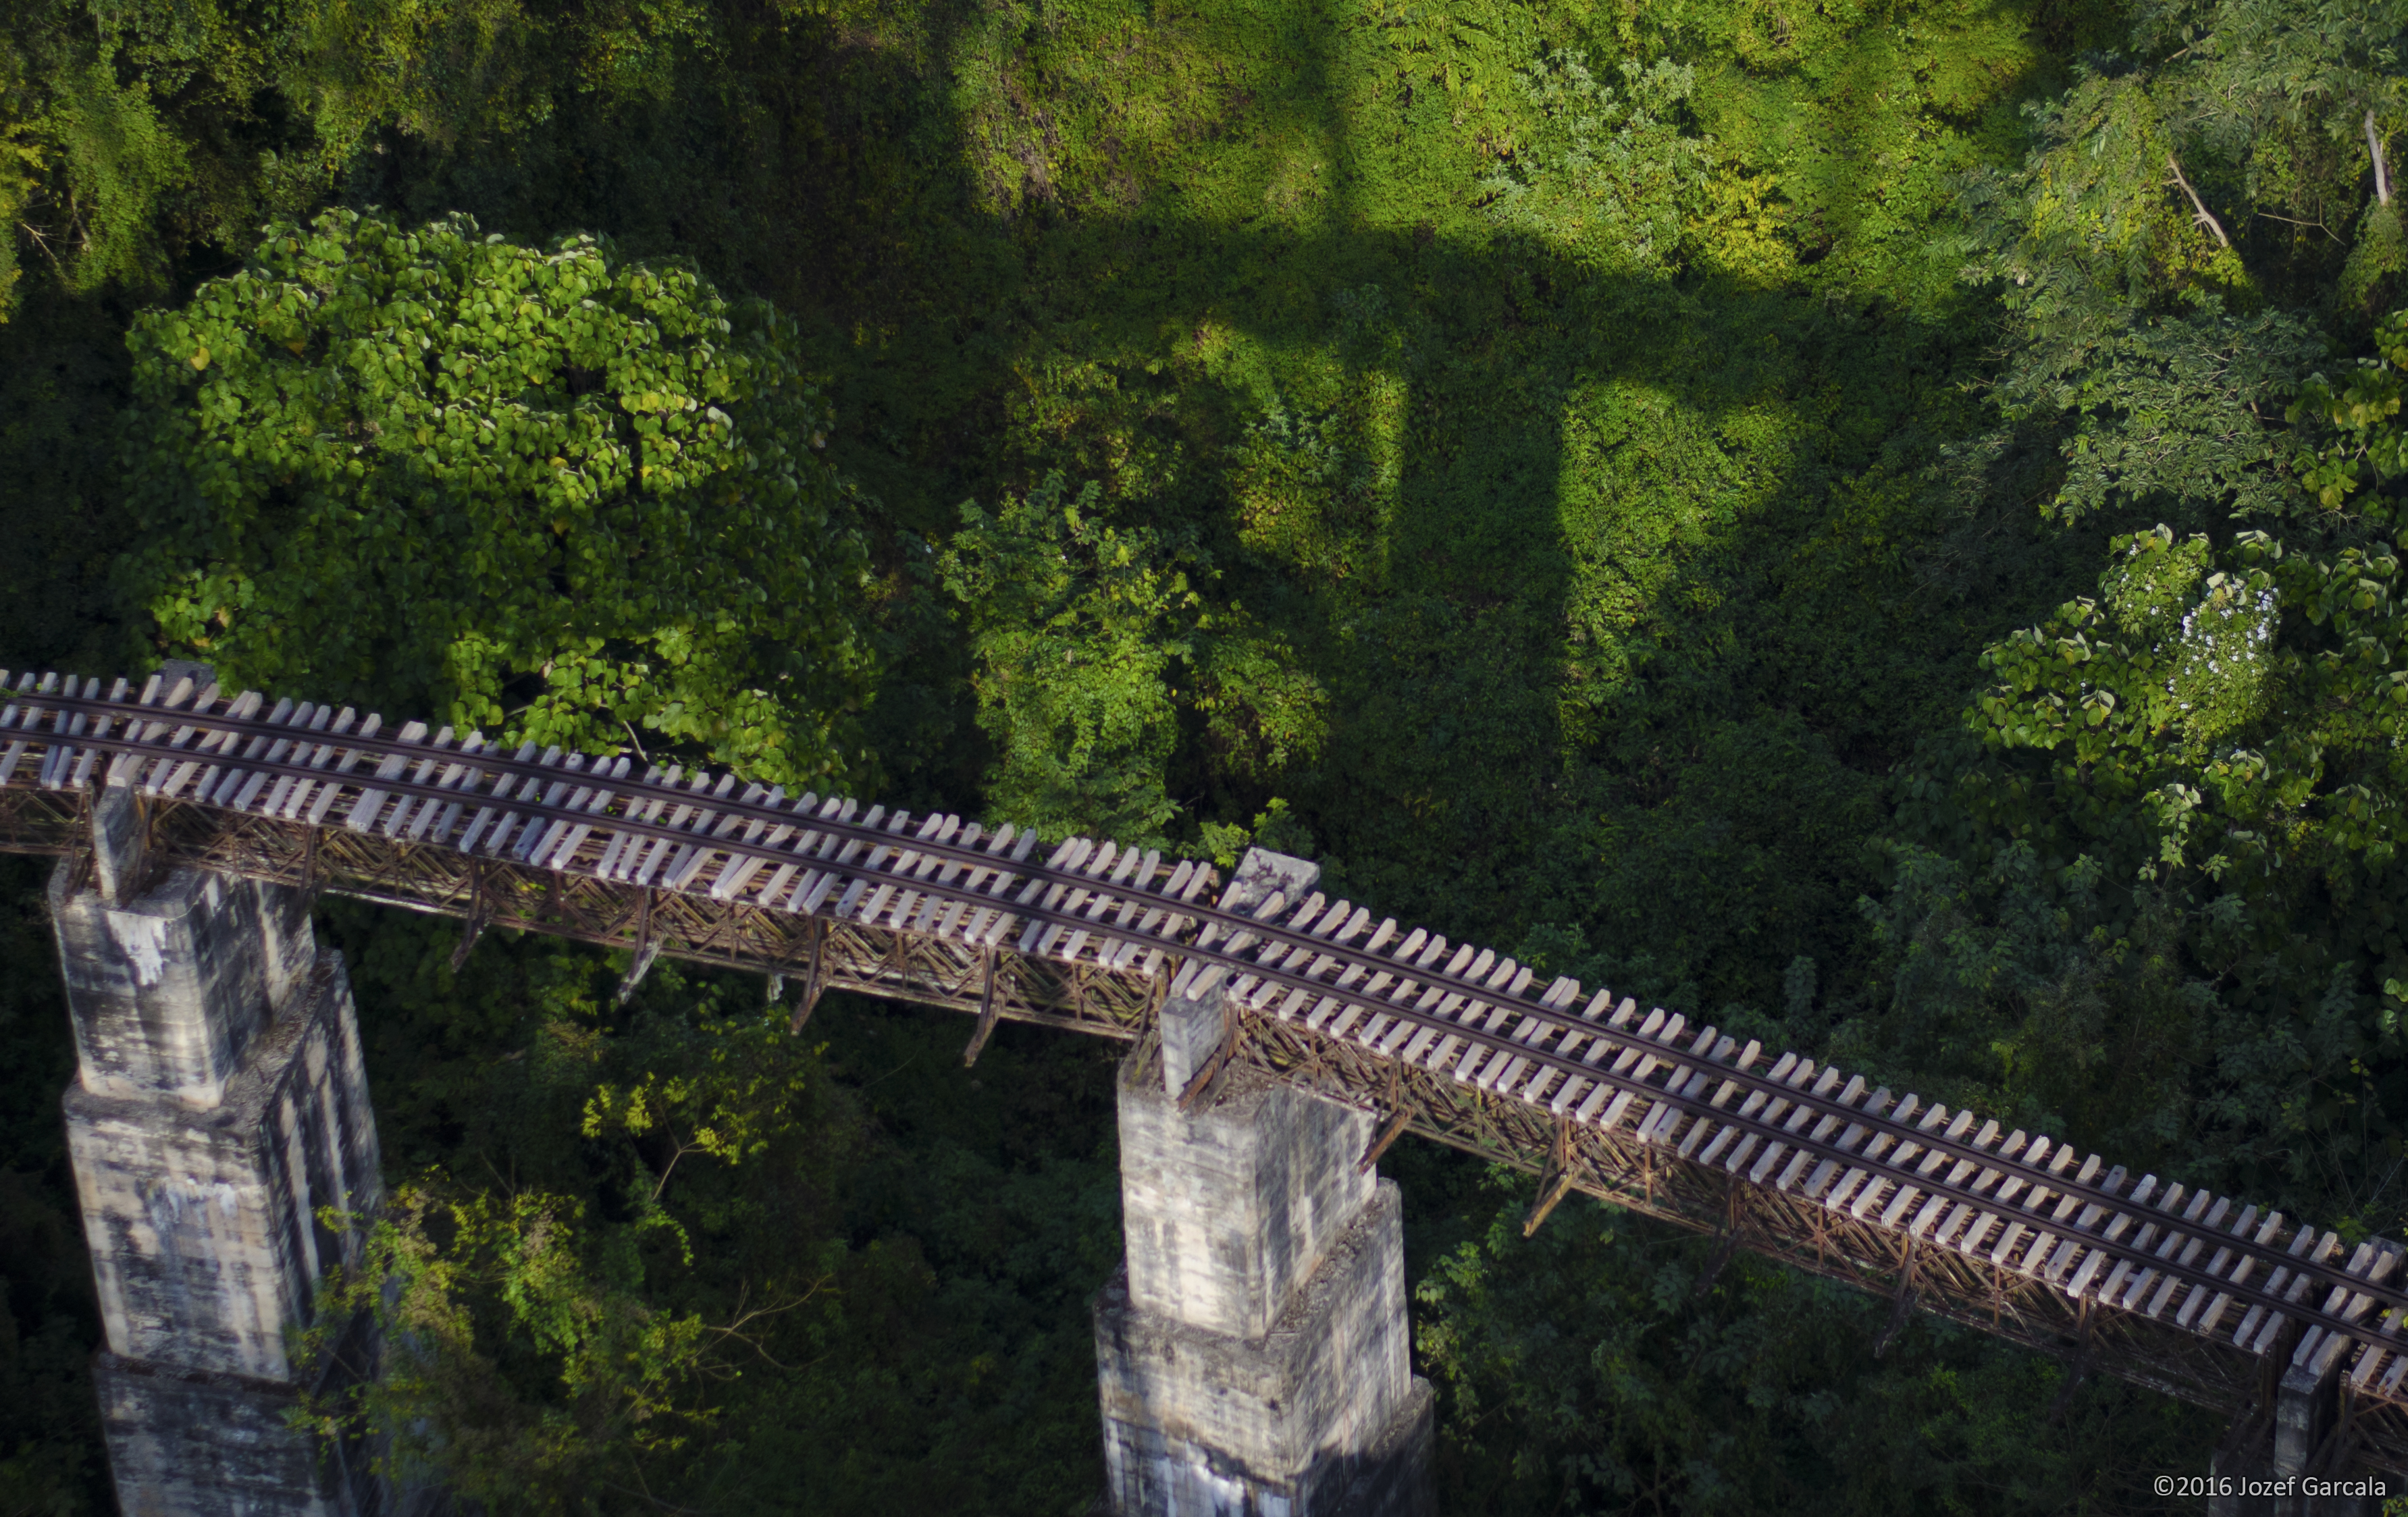 The Goteik Viaduct in Pyin Oo Lwin